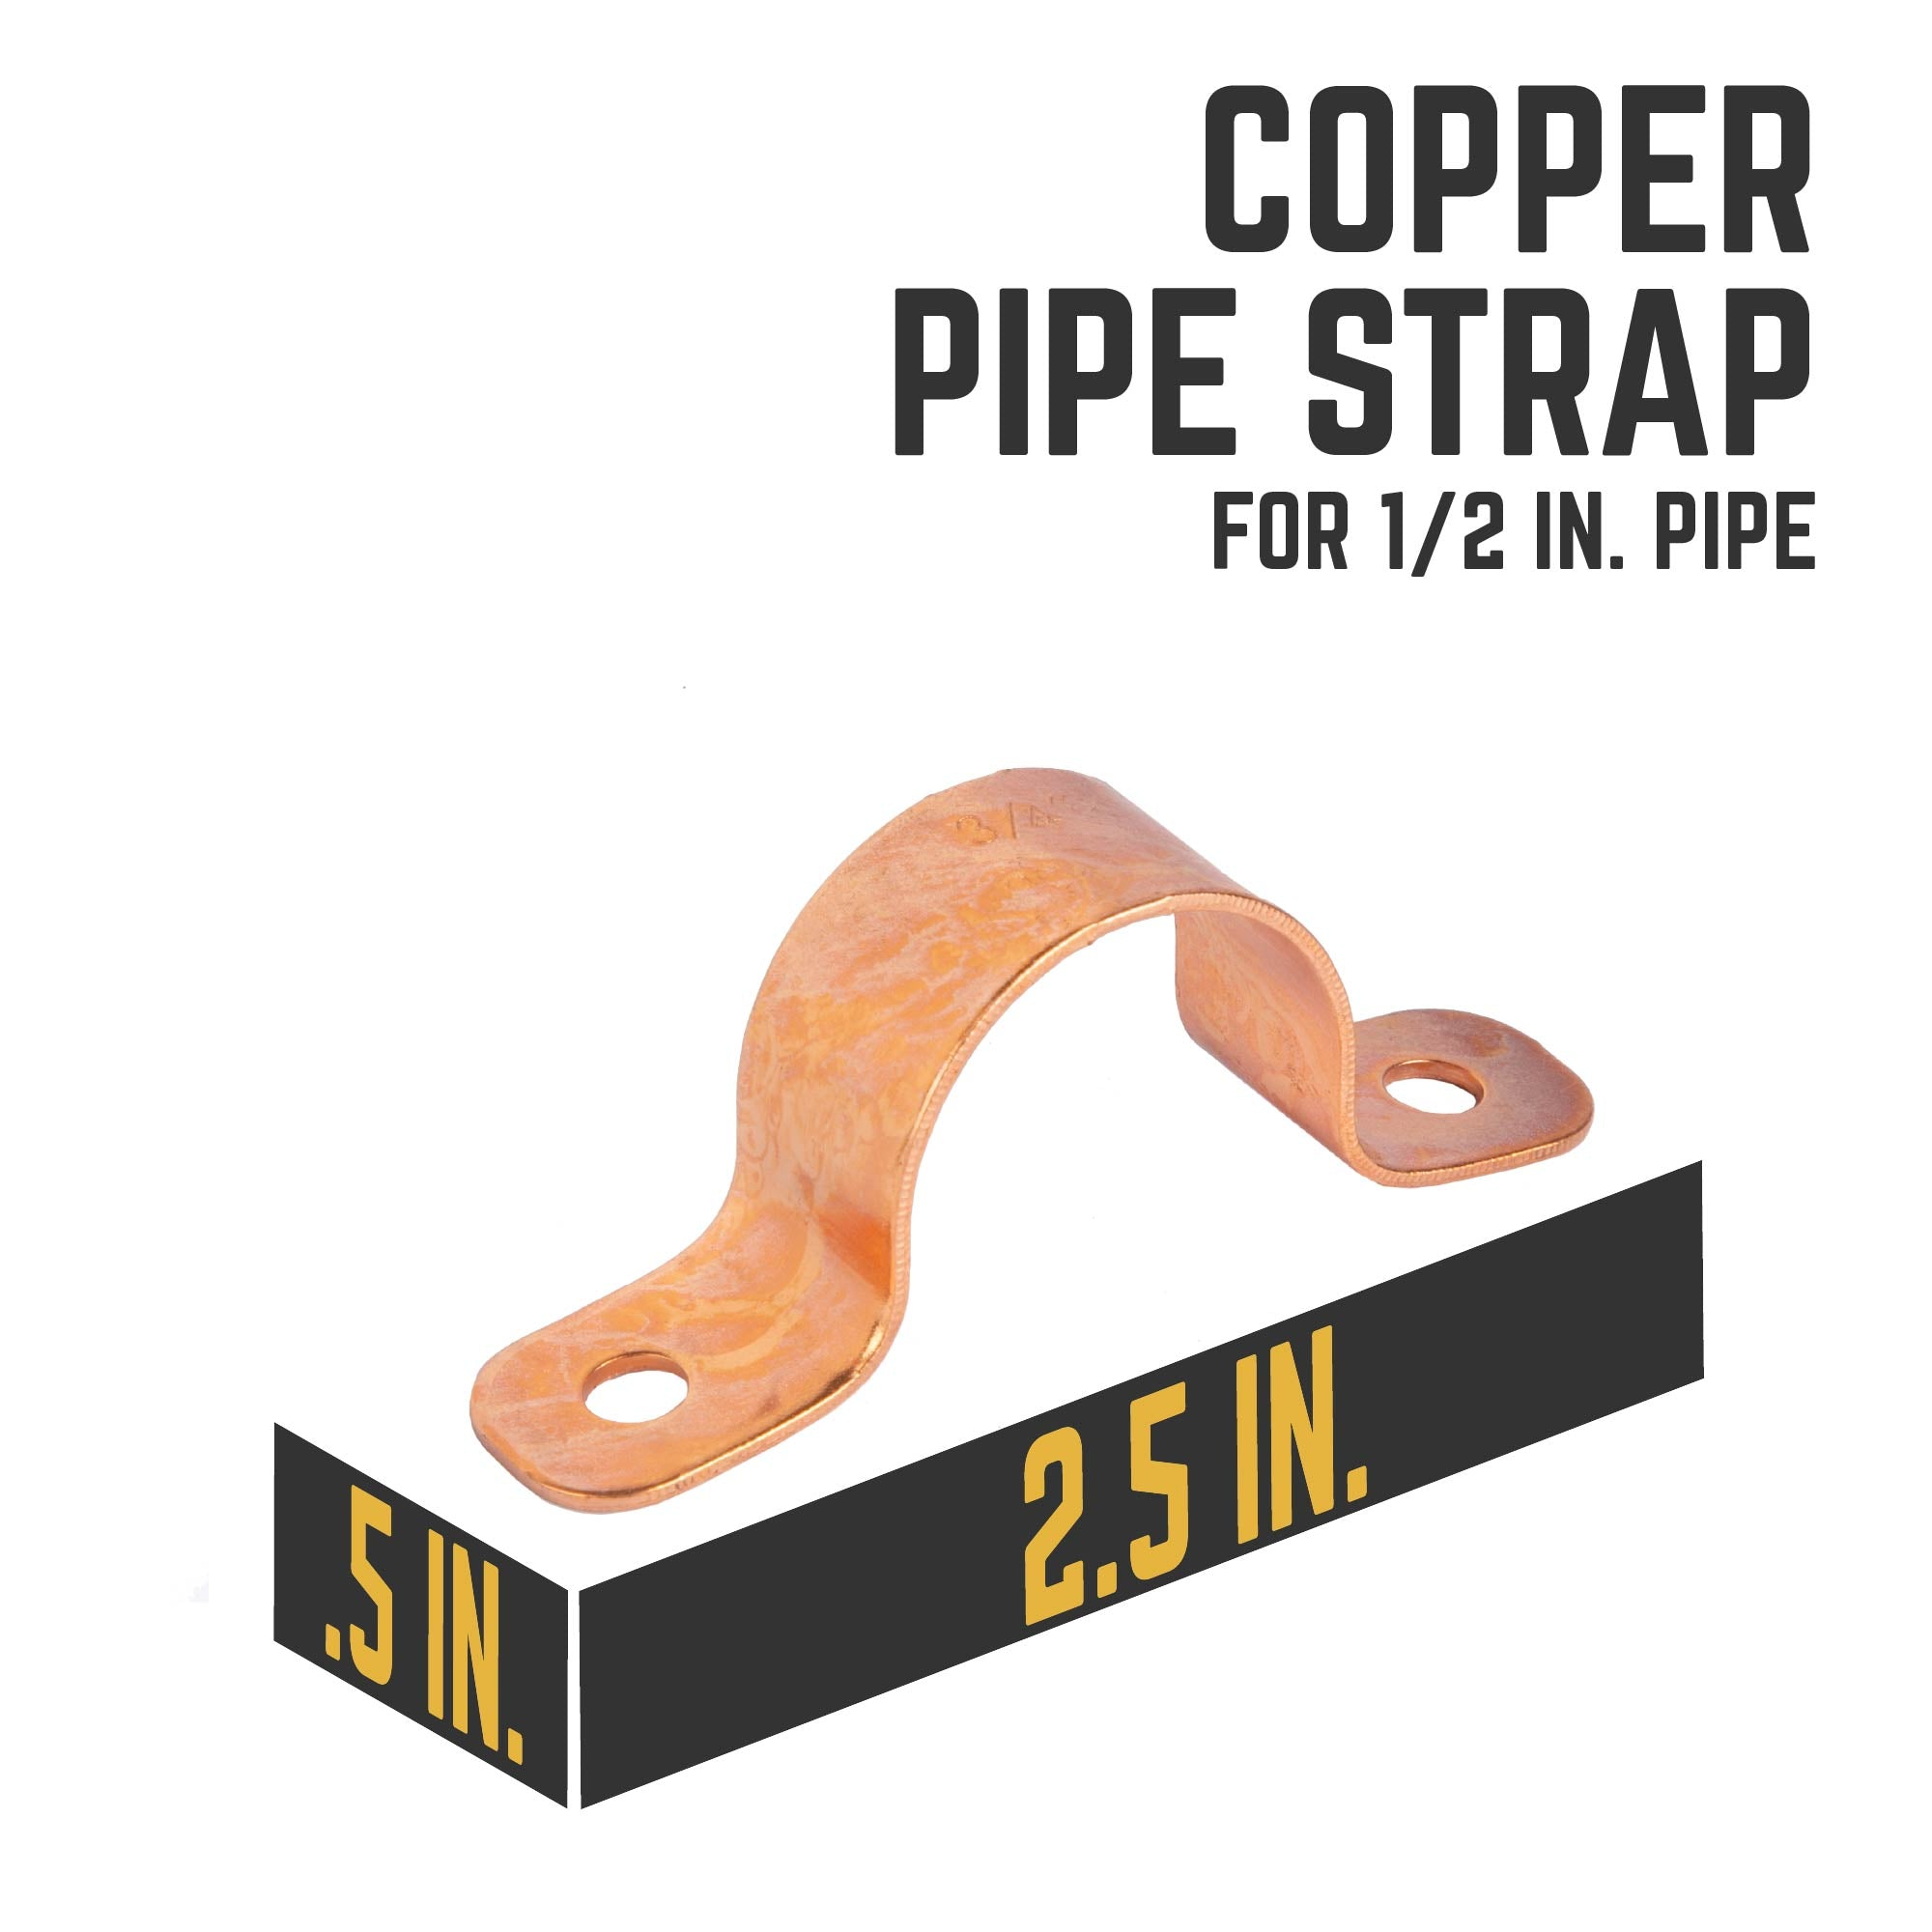 Copper Pipe Strap for 1/2 in. Pipe - Pipe Decor